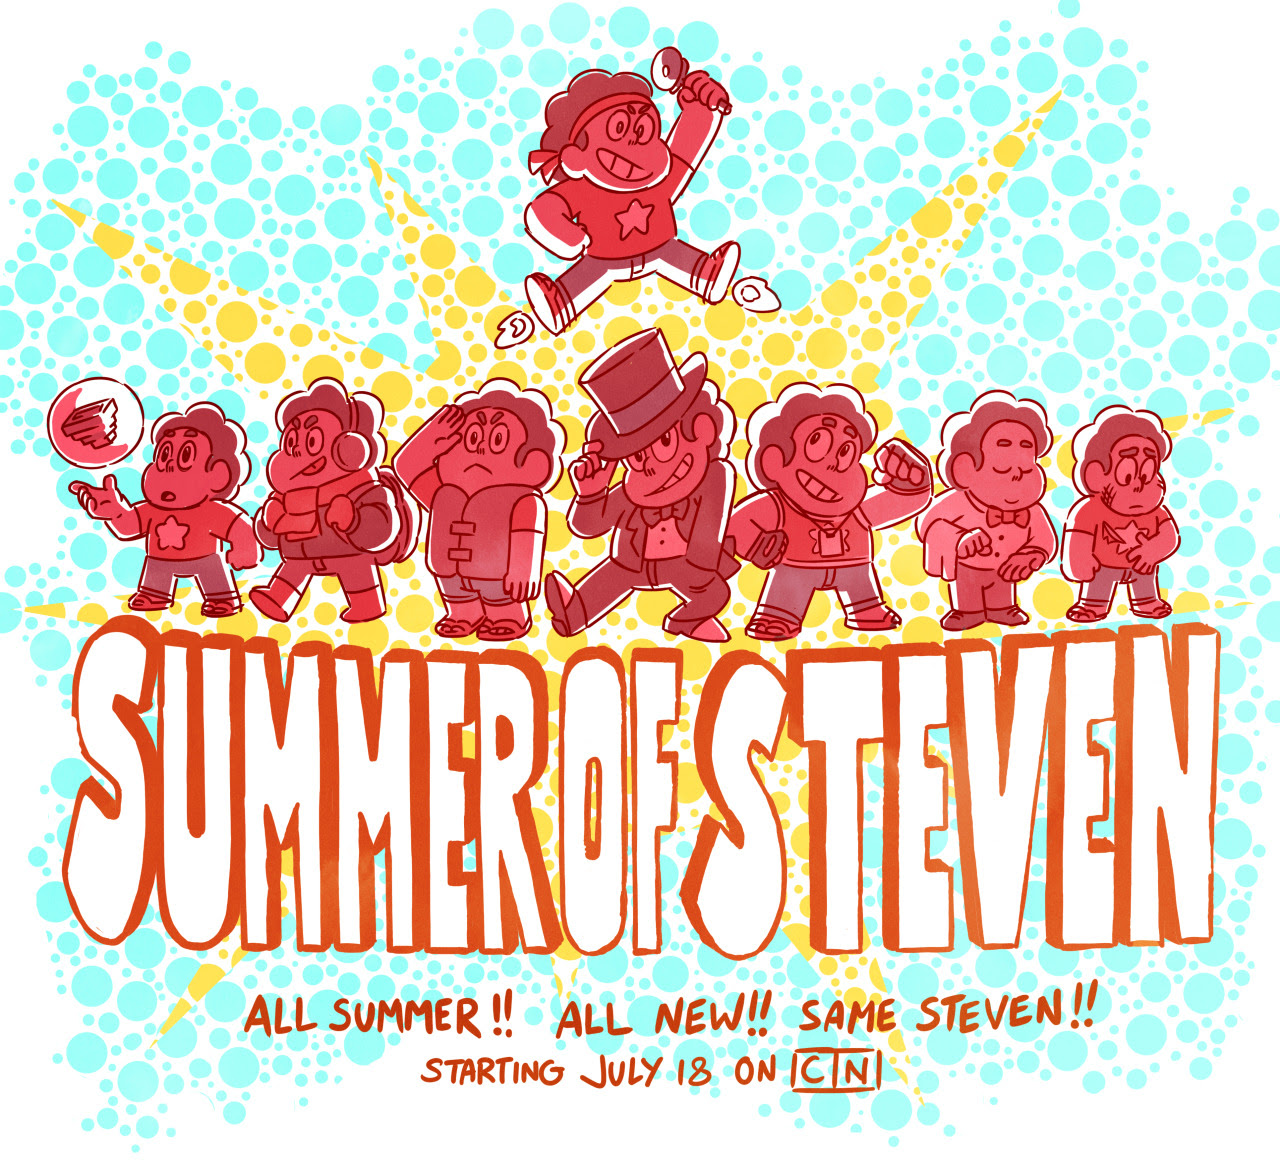 There's a whole lot of Steven coming your way! See you next week!